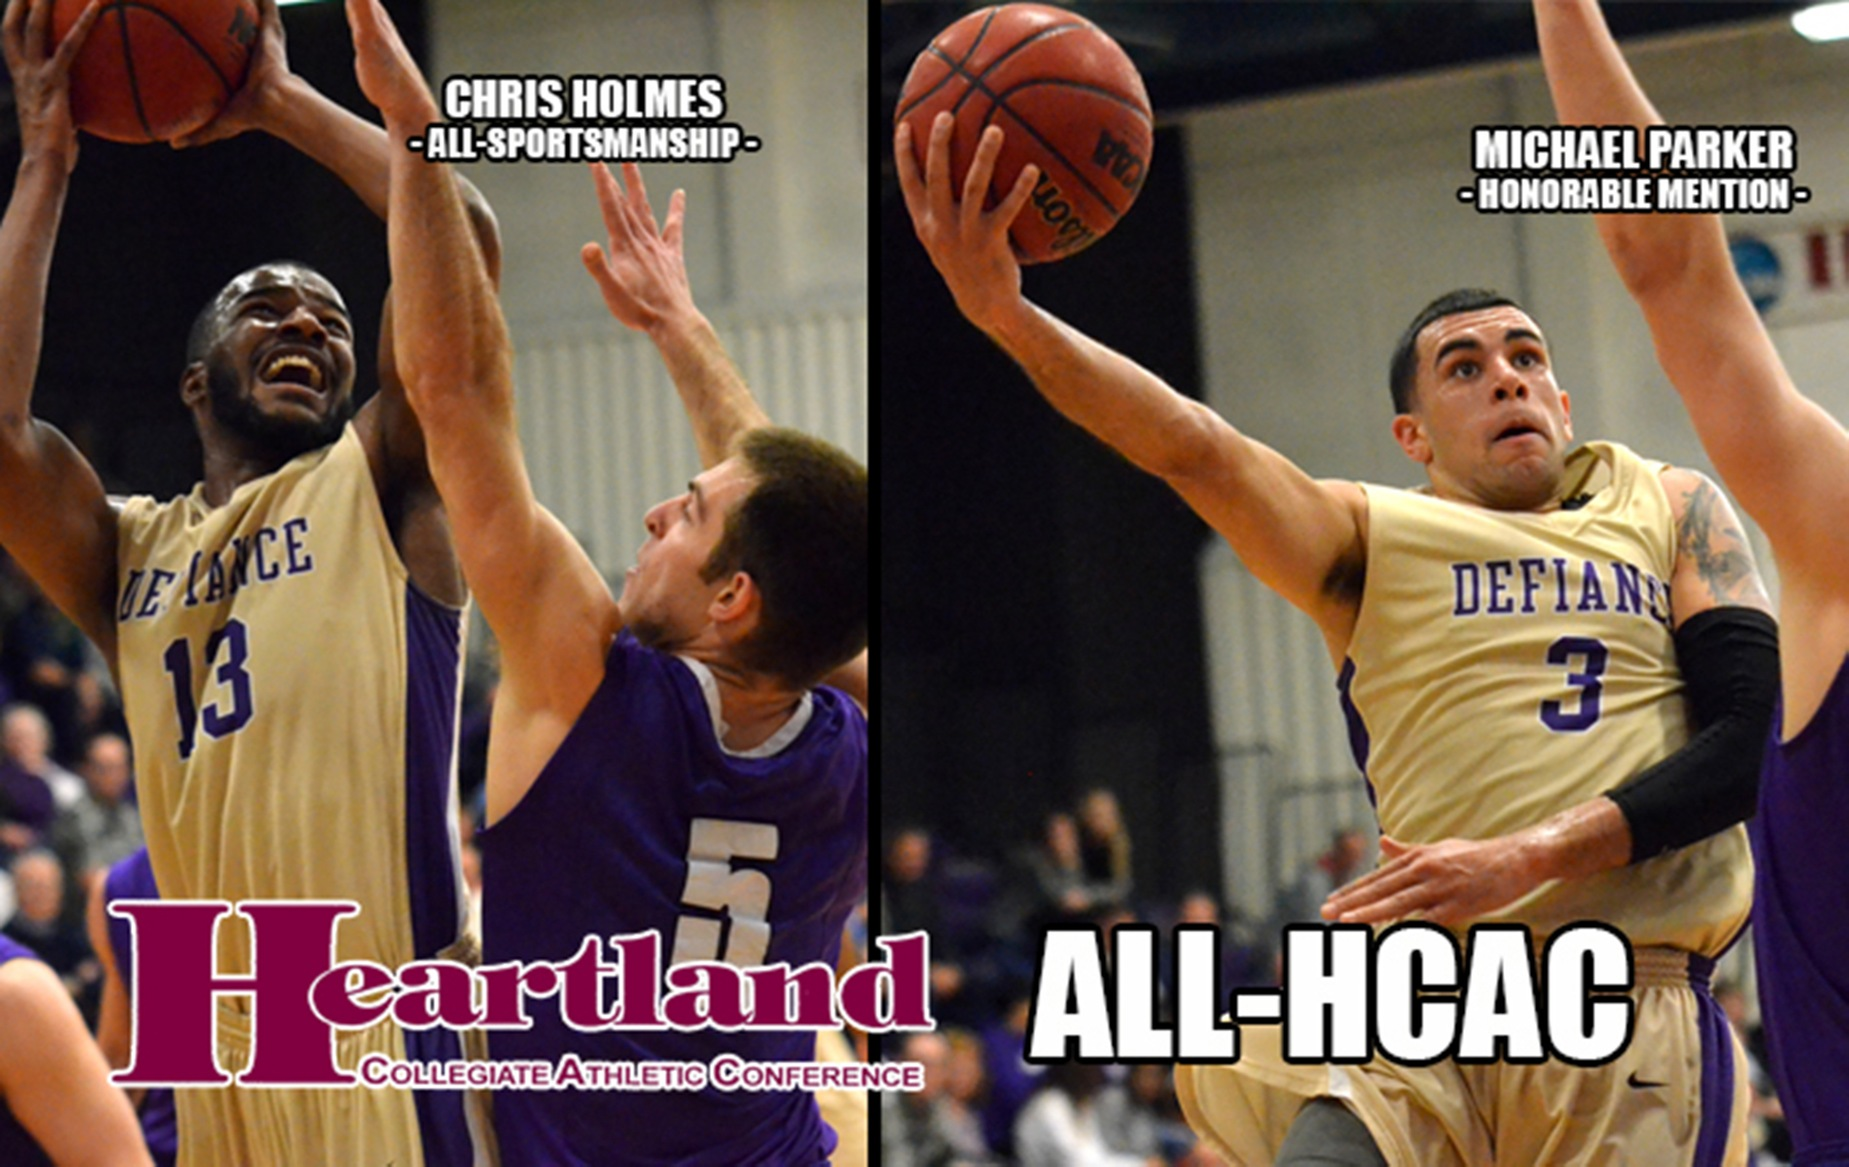 Parker Headlines All-HCAC Selections For Men's Basketball